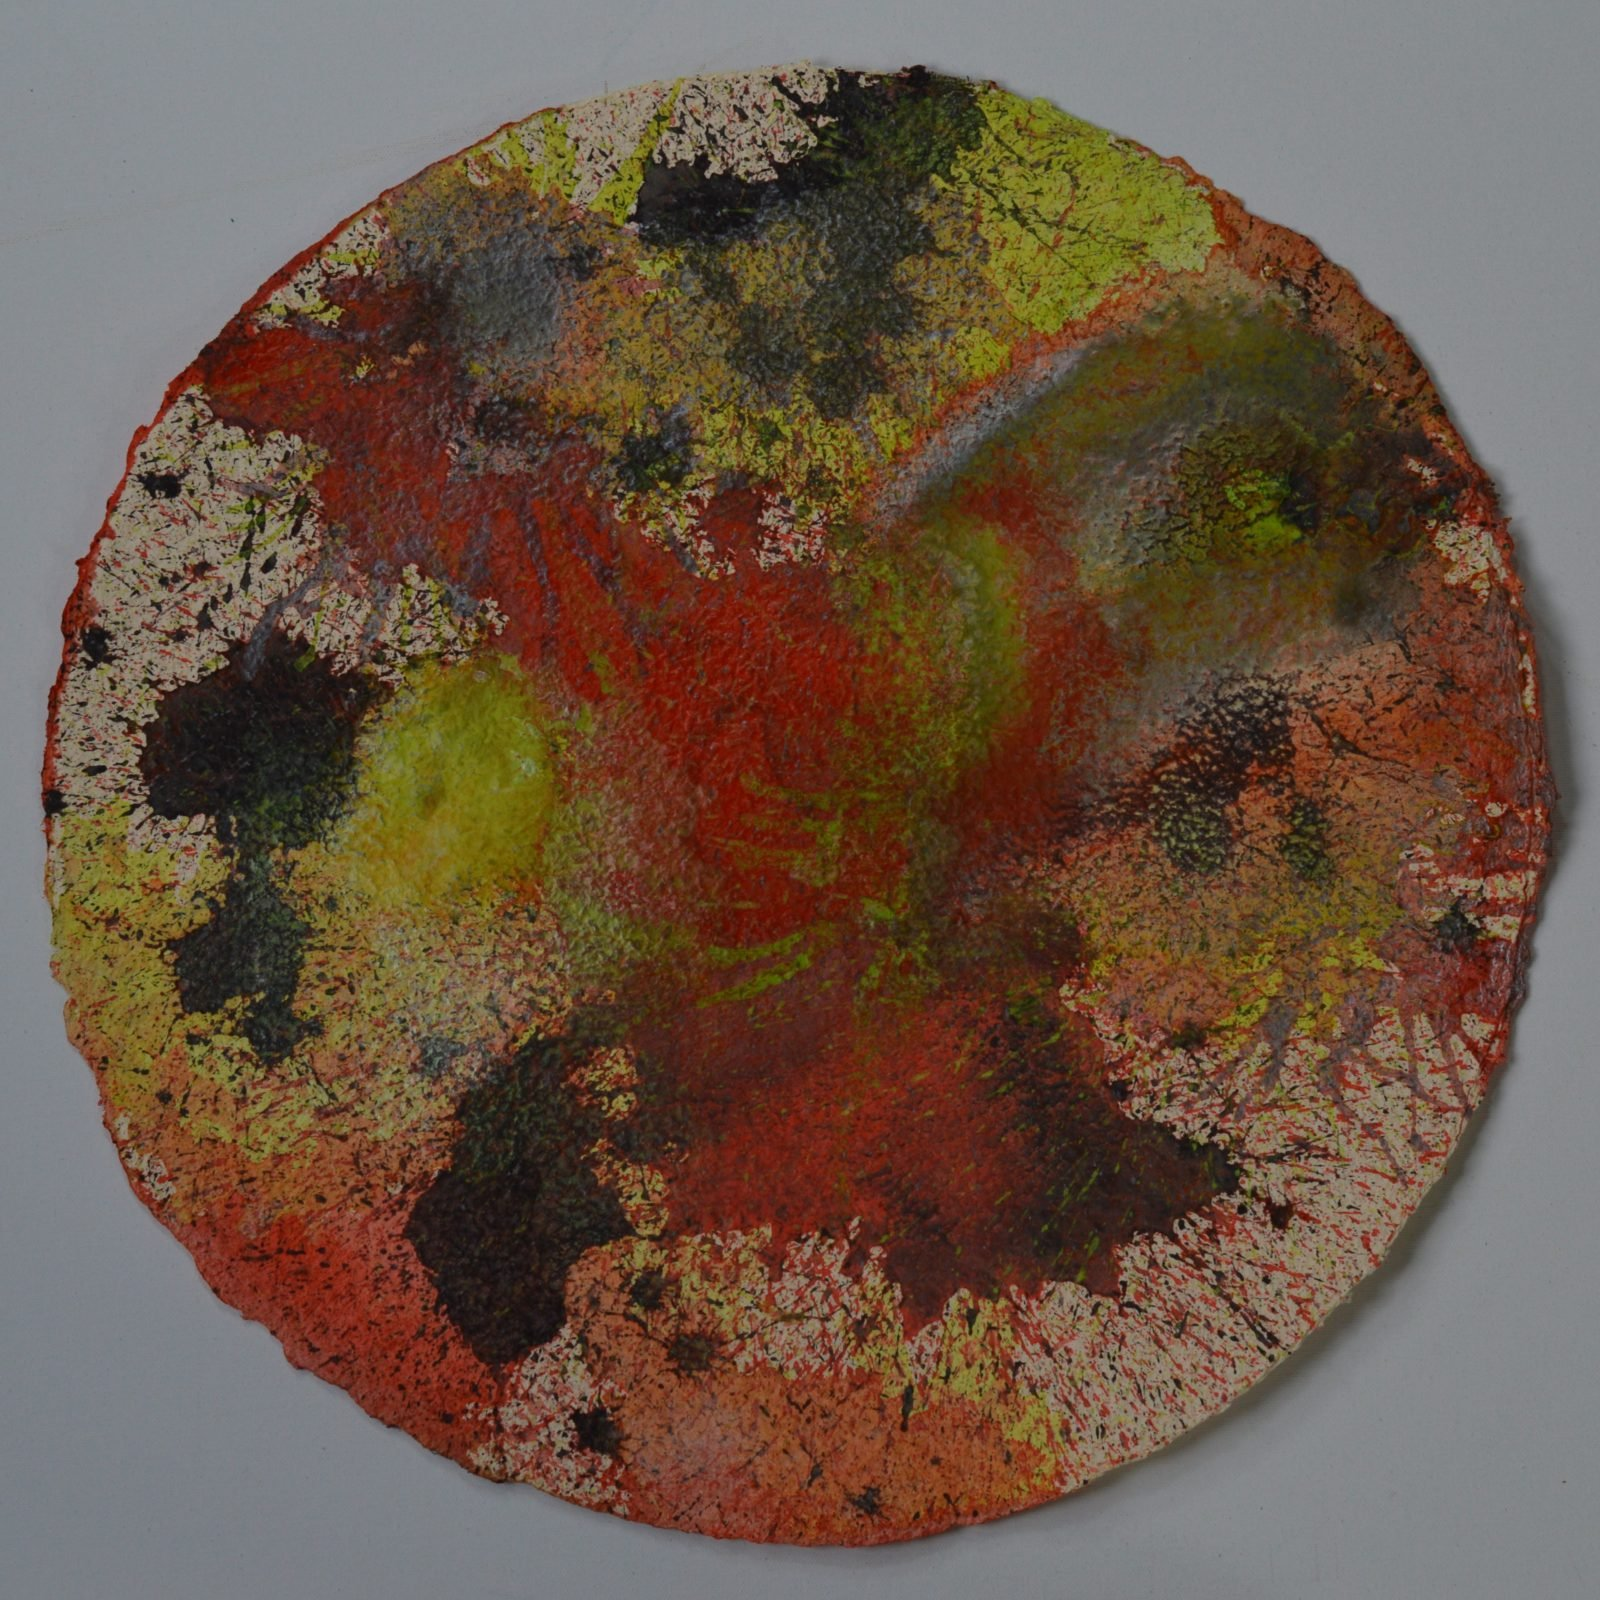 Chamukuy is an abstract 50cm circular painting. Layers of splatters lie beneath explosions of vermilion, lemon yellow, oxide black and silver in this vibrant abstract. Part of the Day the Sky Shattered and Flew Away series.